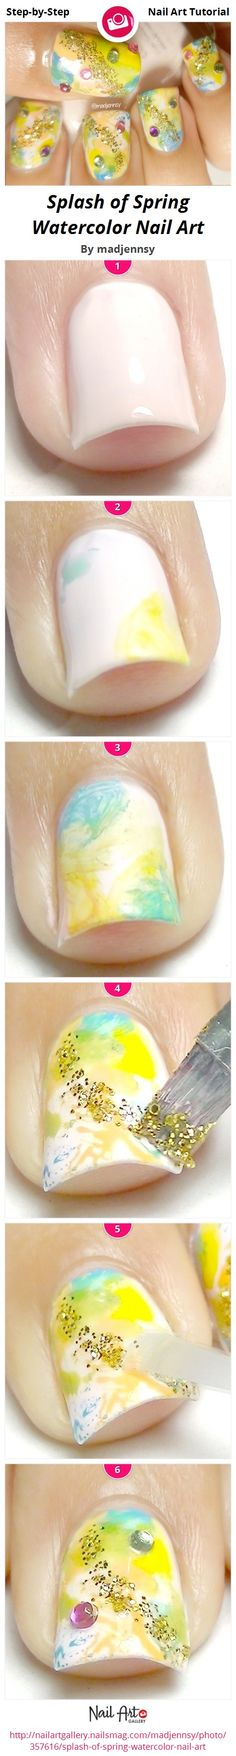 Splash of Spring Watercolor Nail Art by madjennsy from Nail Art Gallery